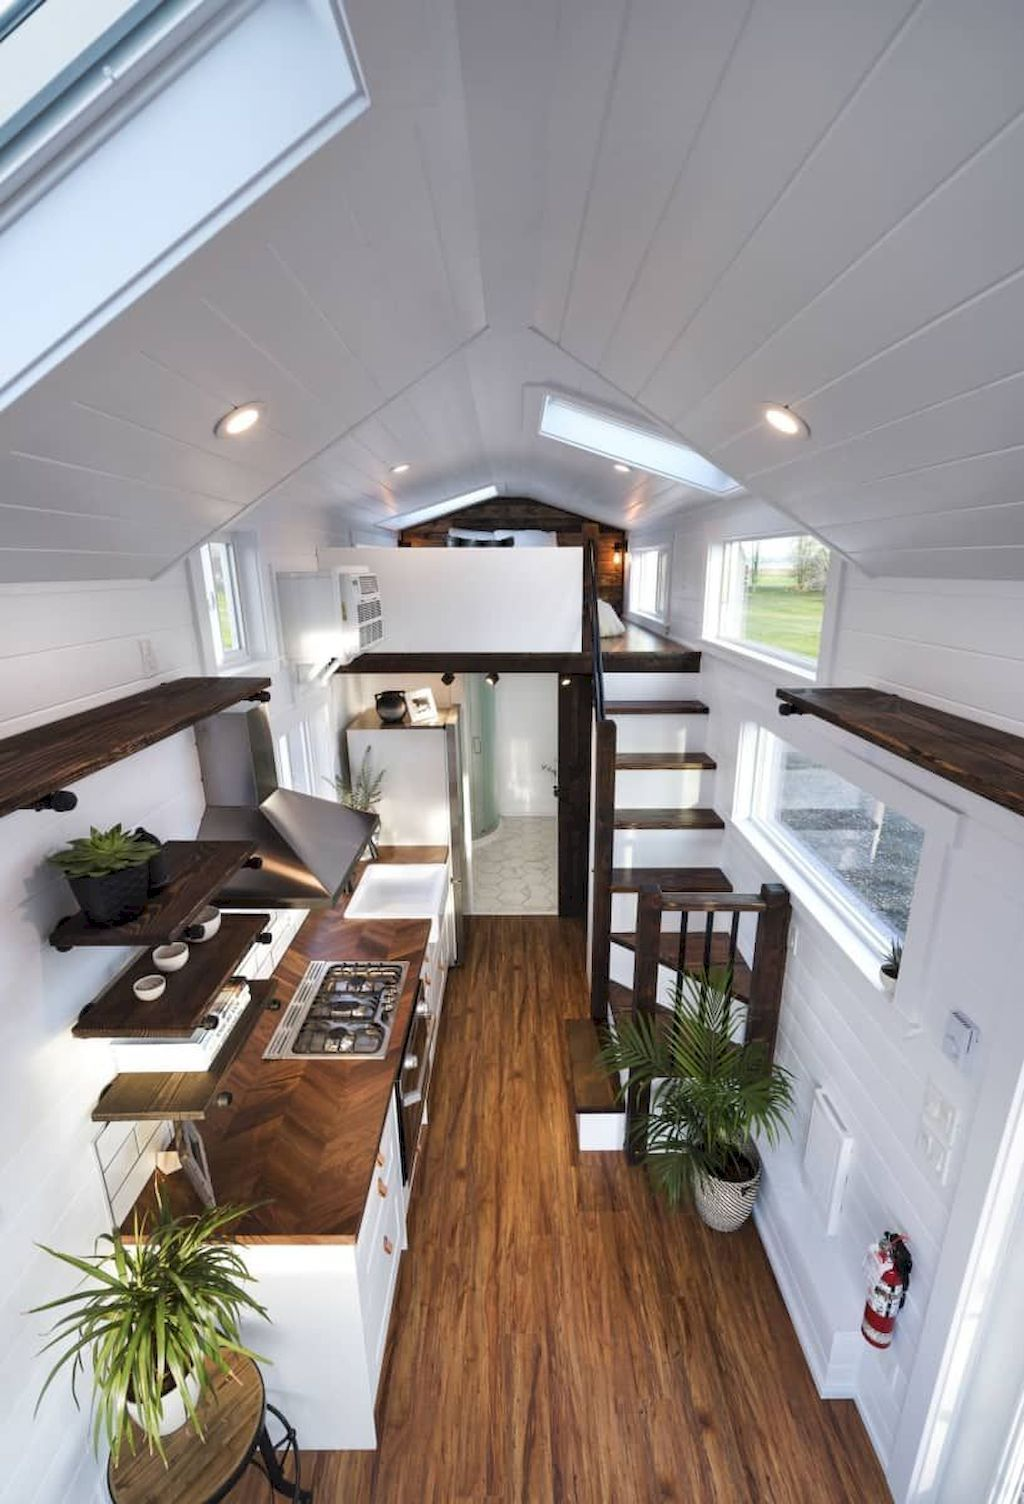 65 Cool Tiny House Interior Design Ideas #houseinterior